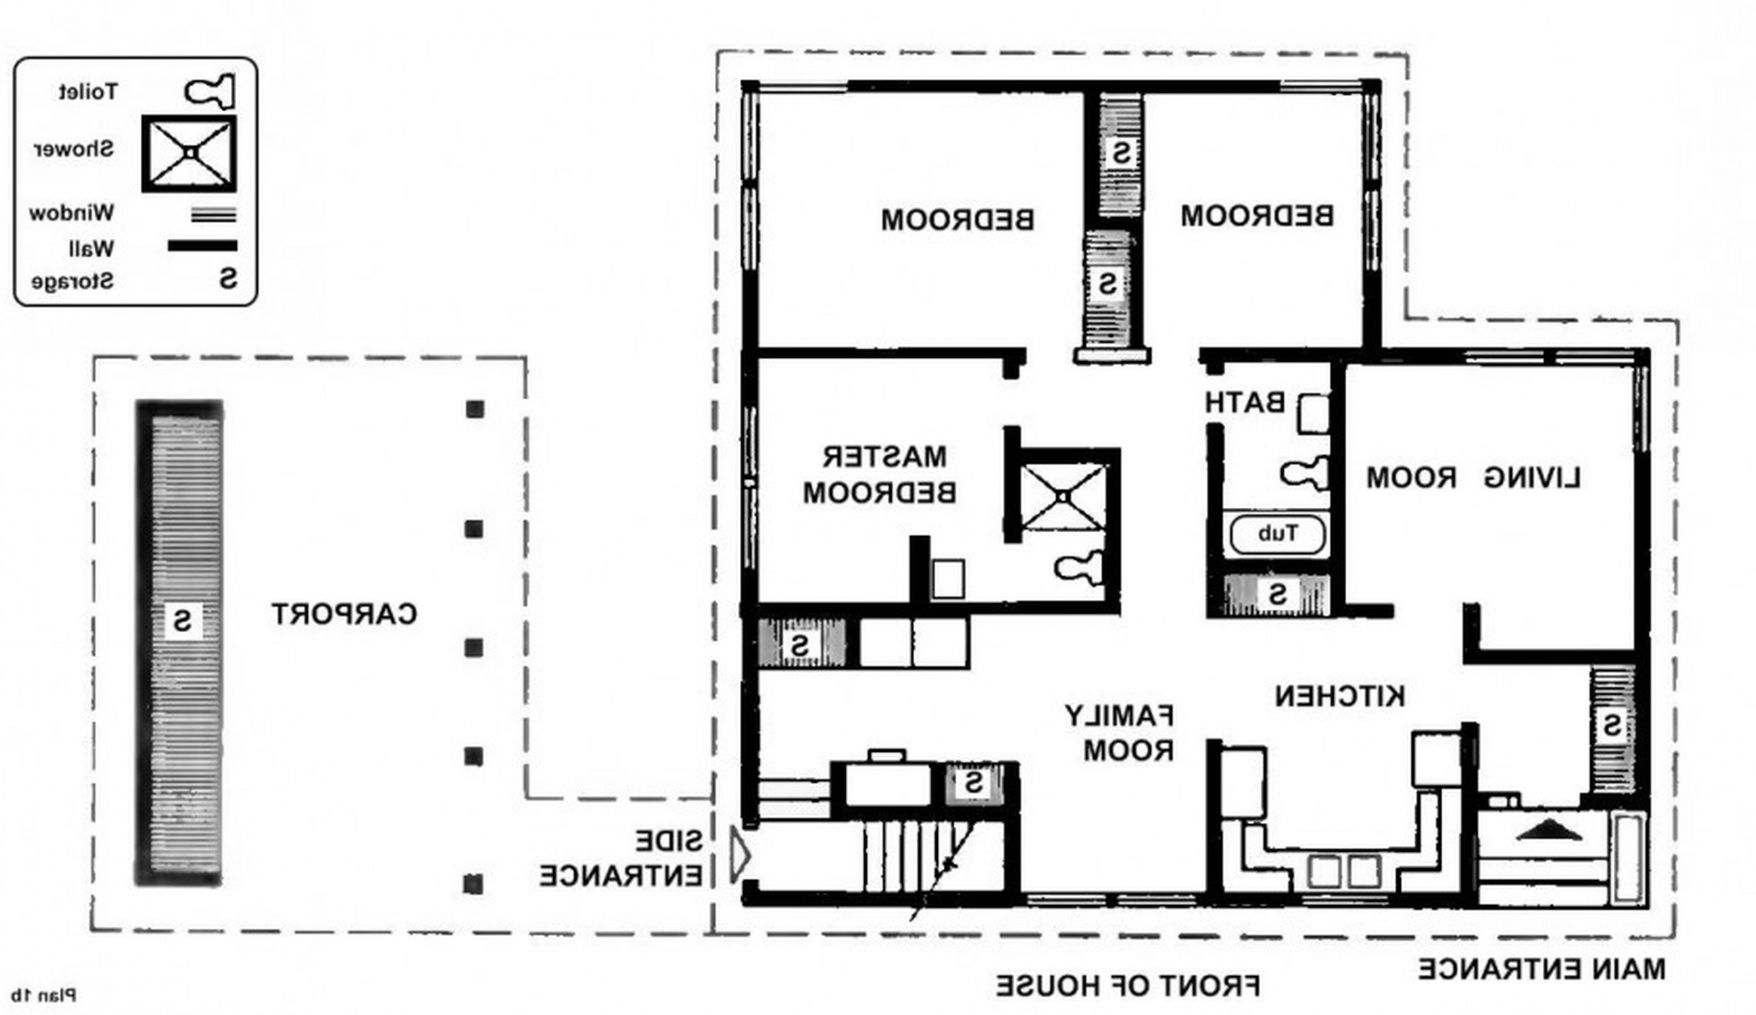 Marvelous Build A House Plan Online #2: Awesome Build House Plan Online Check More At Http://www.jnnsysy.com/build- House-plan-online/ | Simple Room - Low Budget - Modern And Beautiful |  Pinterest ...